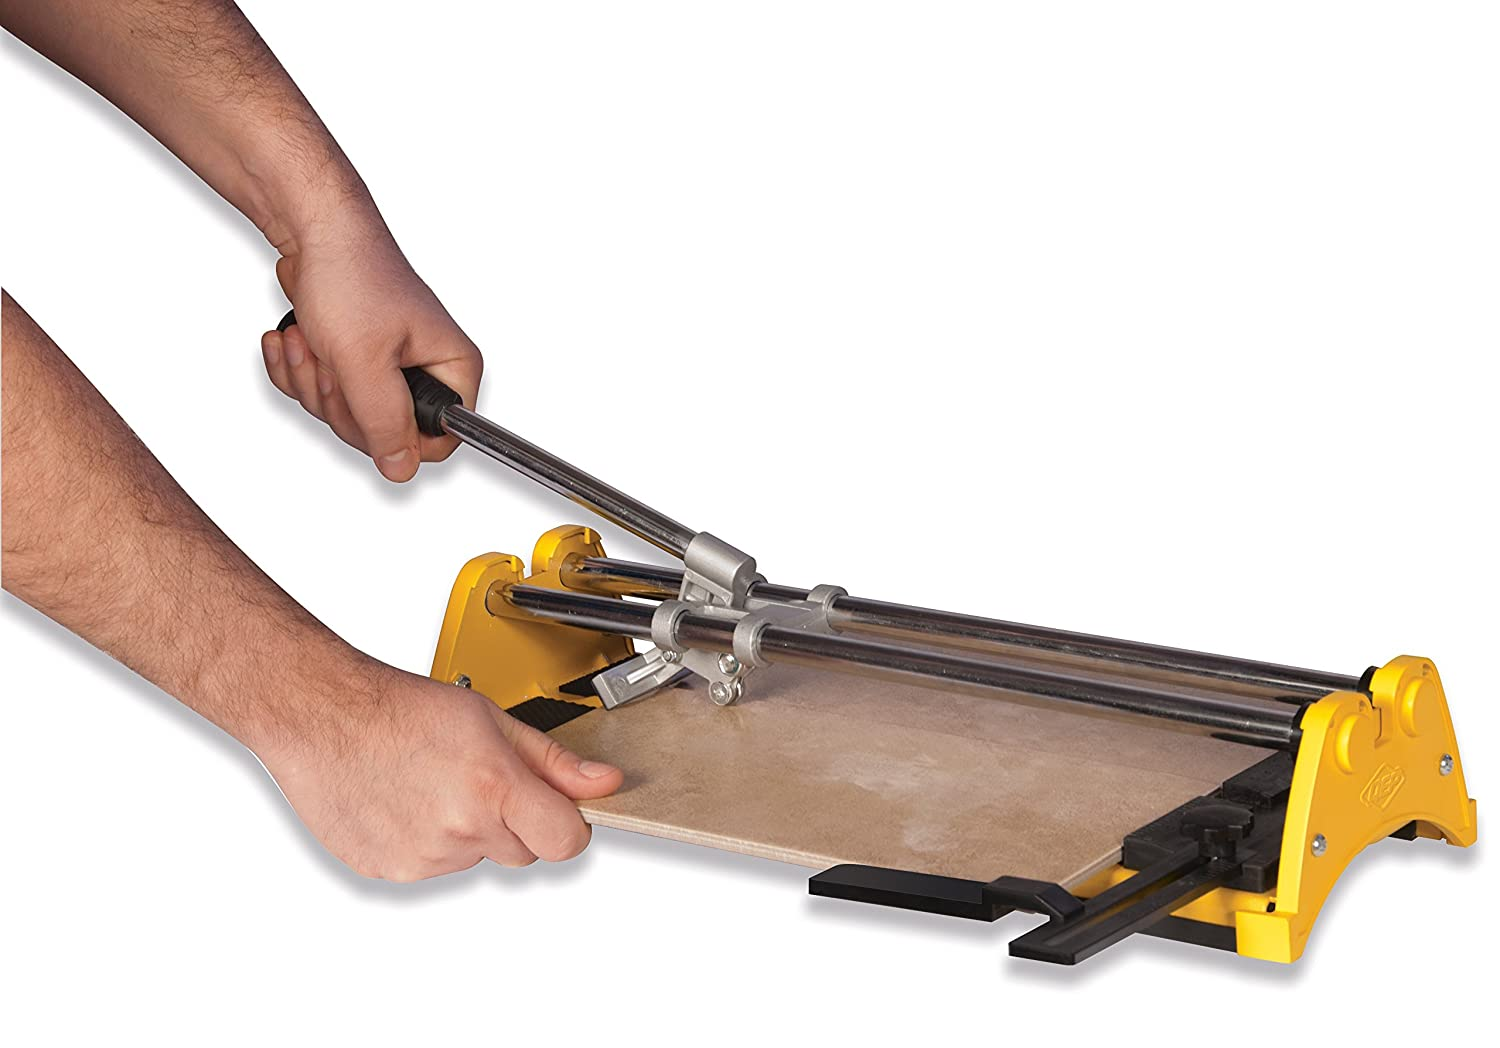 Qep 10214q 14 in rip ceramic tile cutter with 12 in cutting qep 10214q 14 in rip ceramic tile cutter with 12 in cutting wheel qep tile cutter amazon dailygadgetfo Gallery